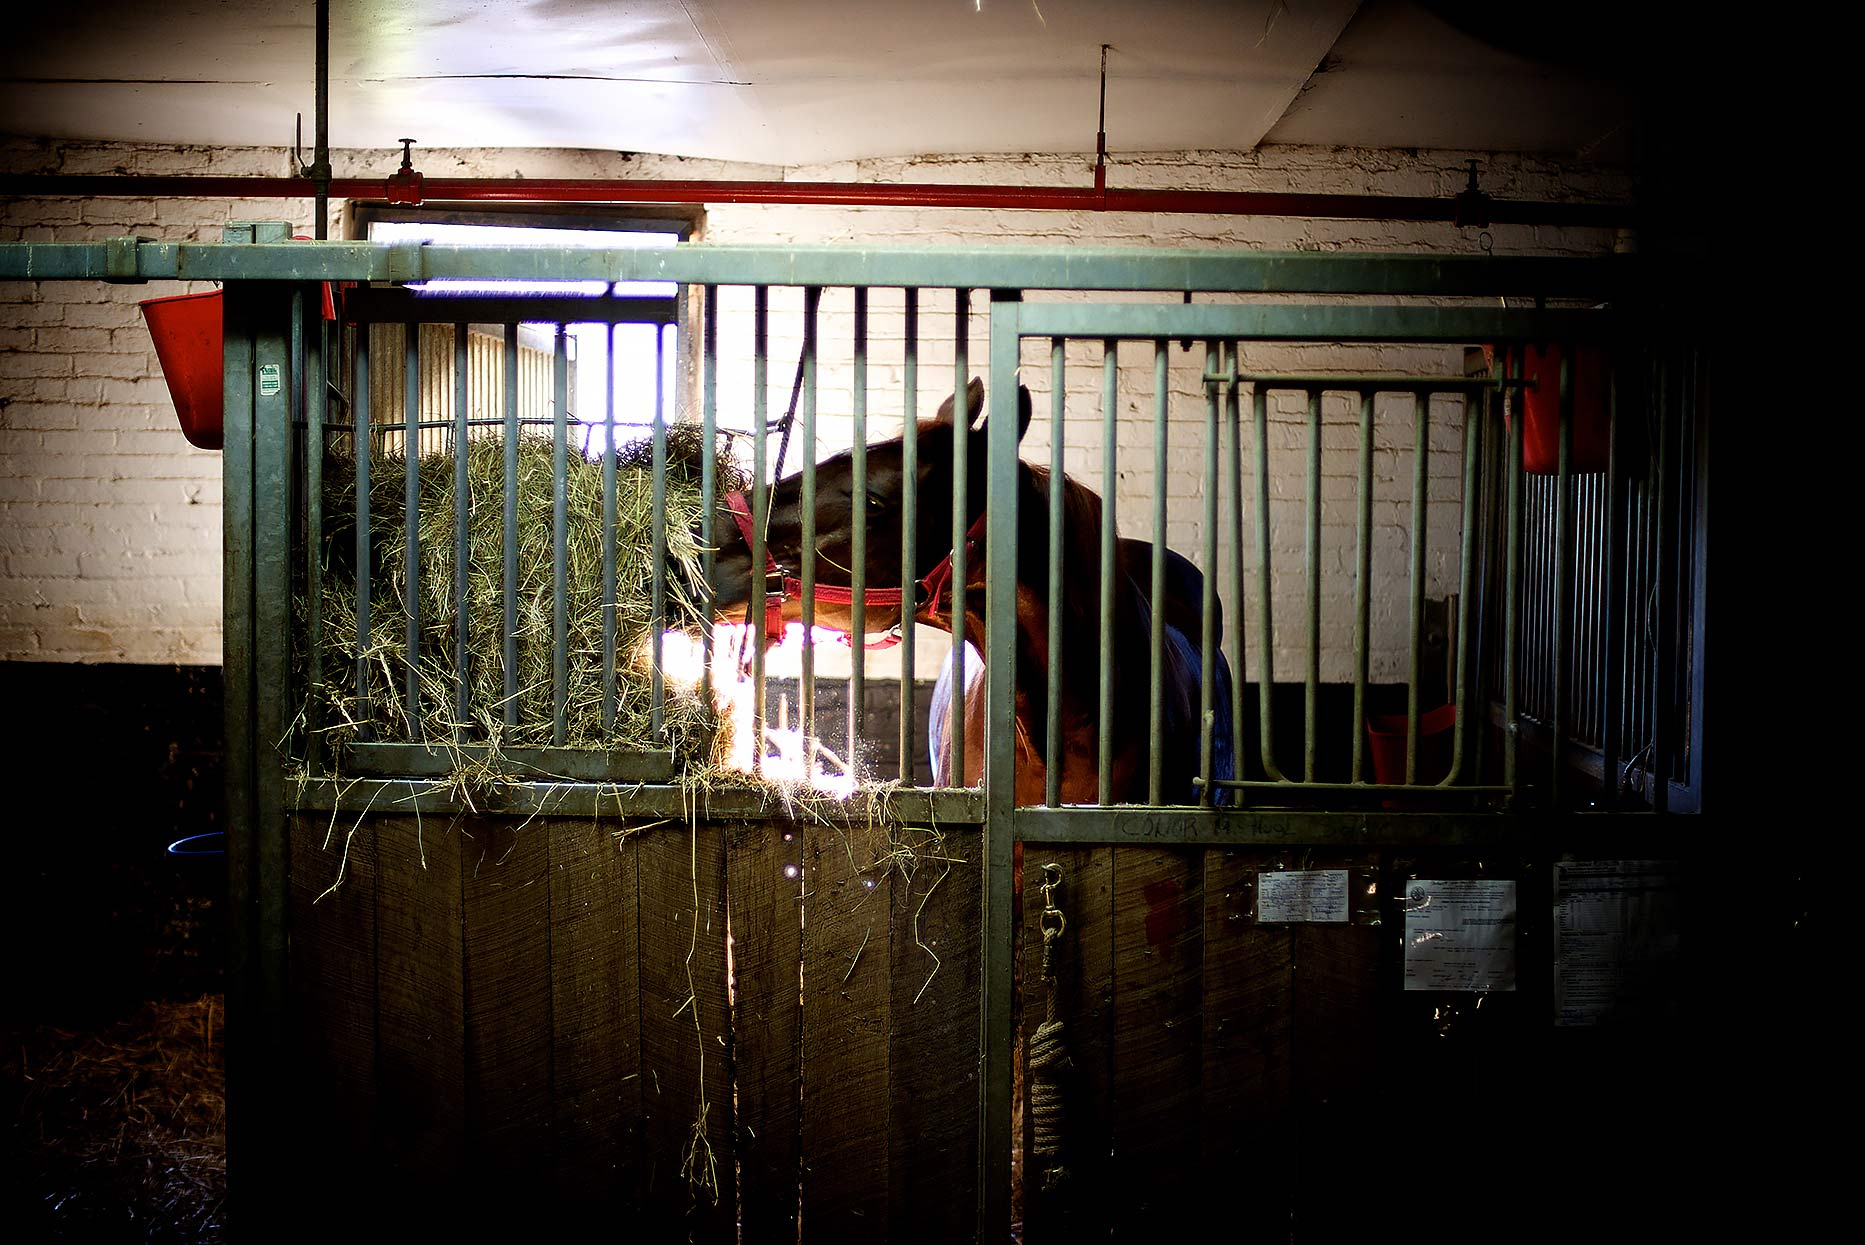 Carriage horse eating hay in his stall in NYC